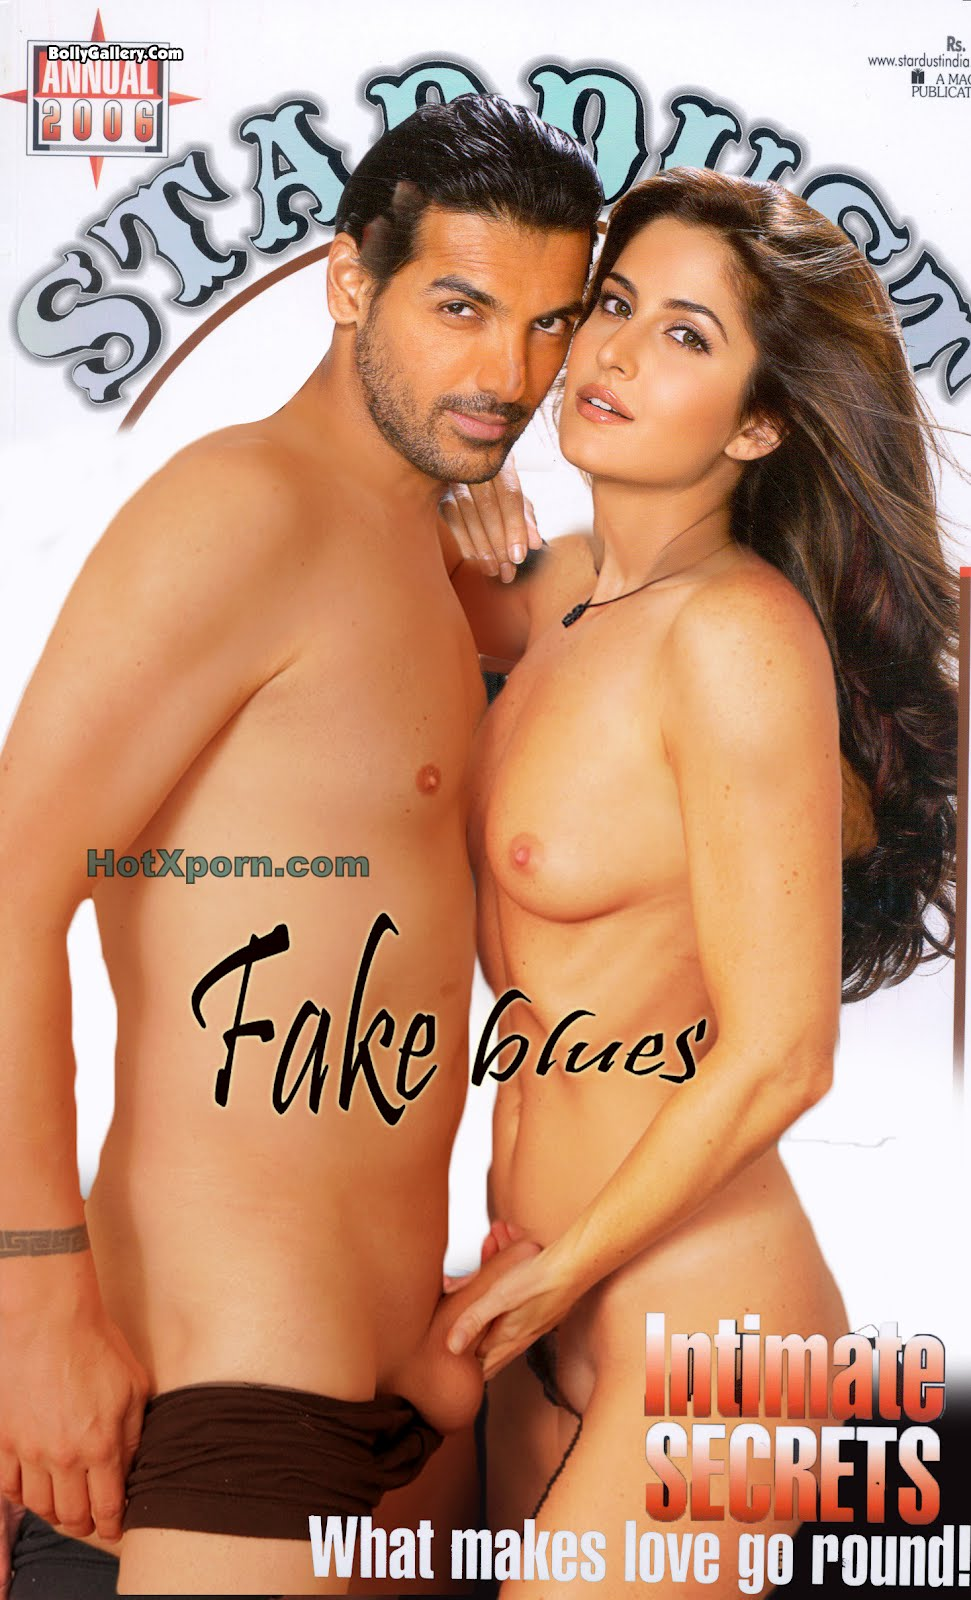 from Leland katrina kaif having sex naked